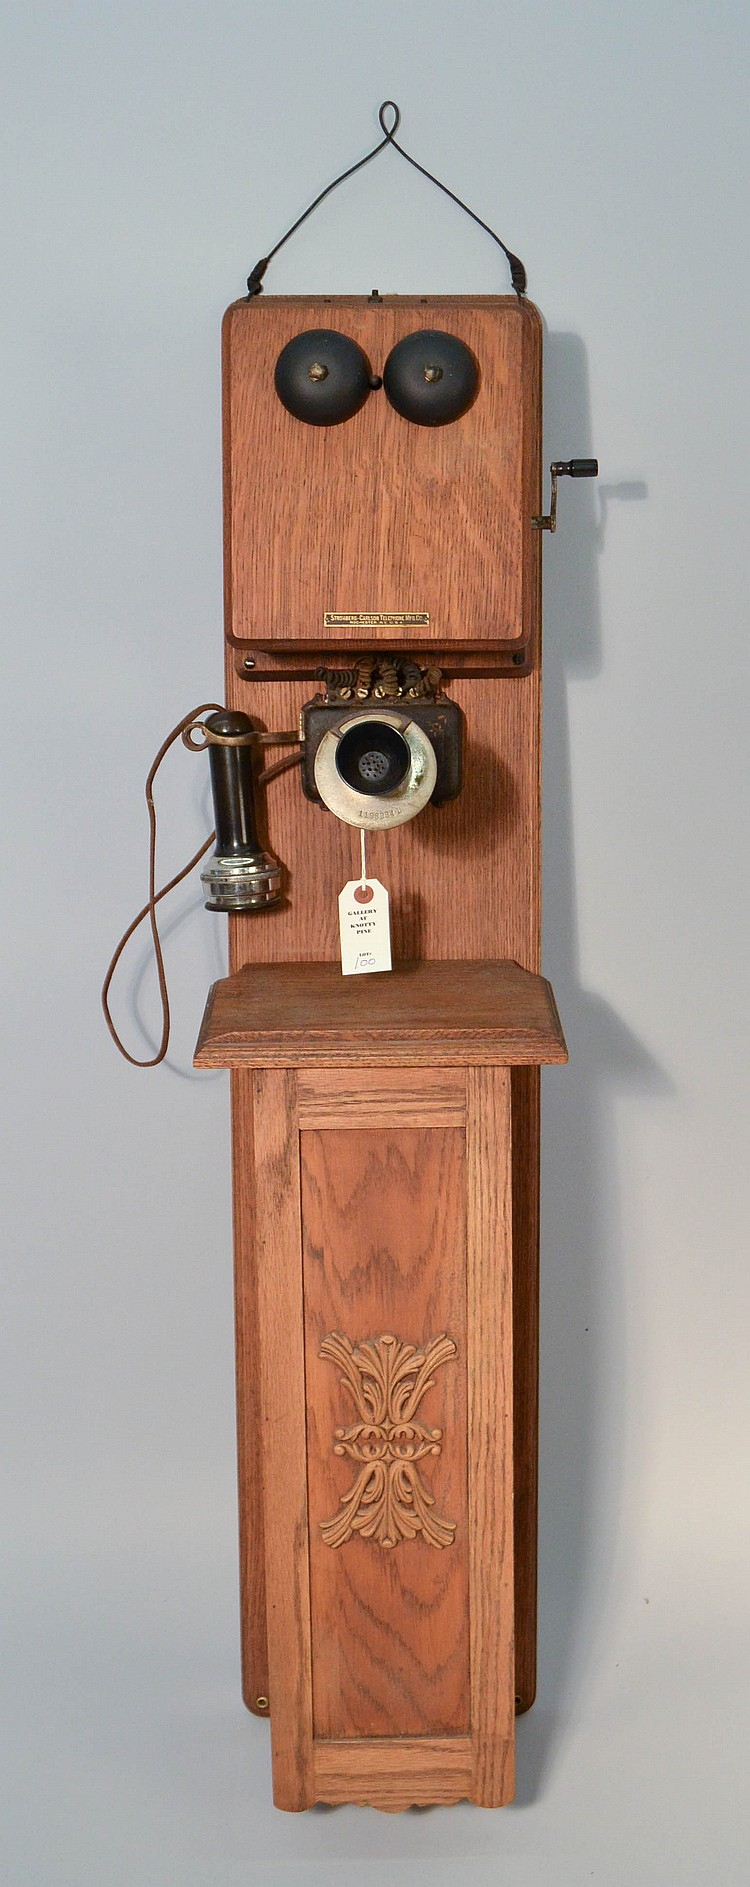 VINTAGE STROMBERG CARLSON TANDEM TYPE OAK CASED WALL TELEPHONE WITH ORIGINAL MARKED TOP BOX